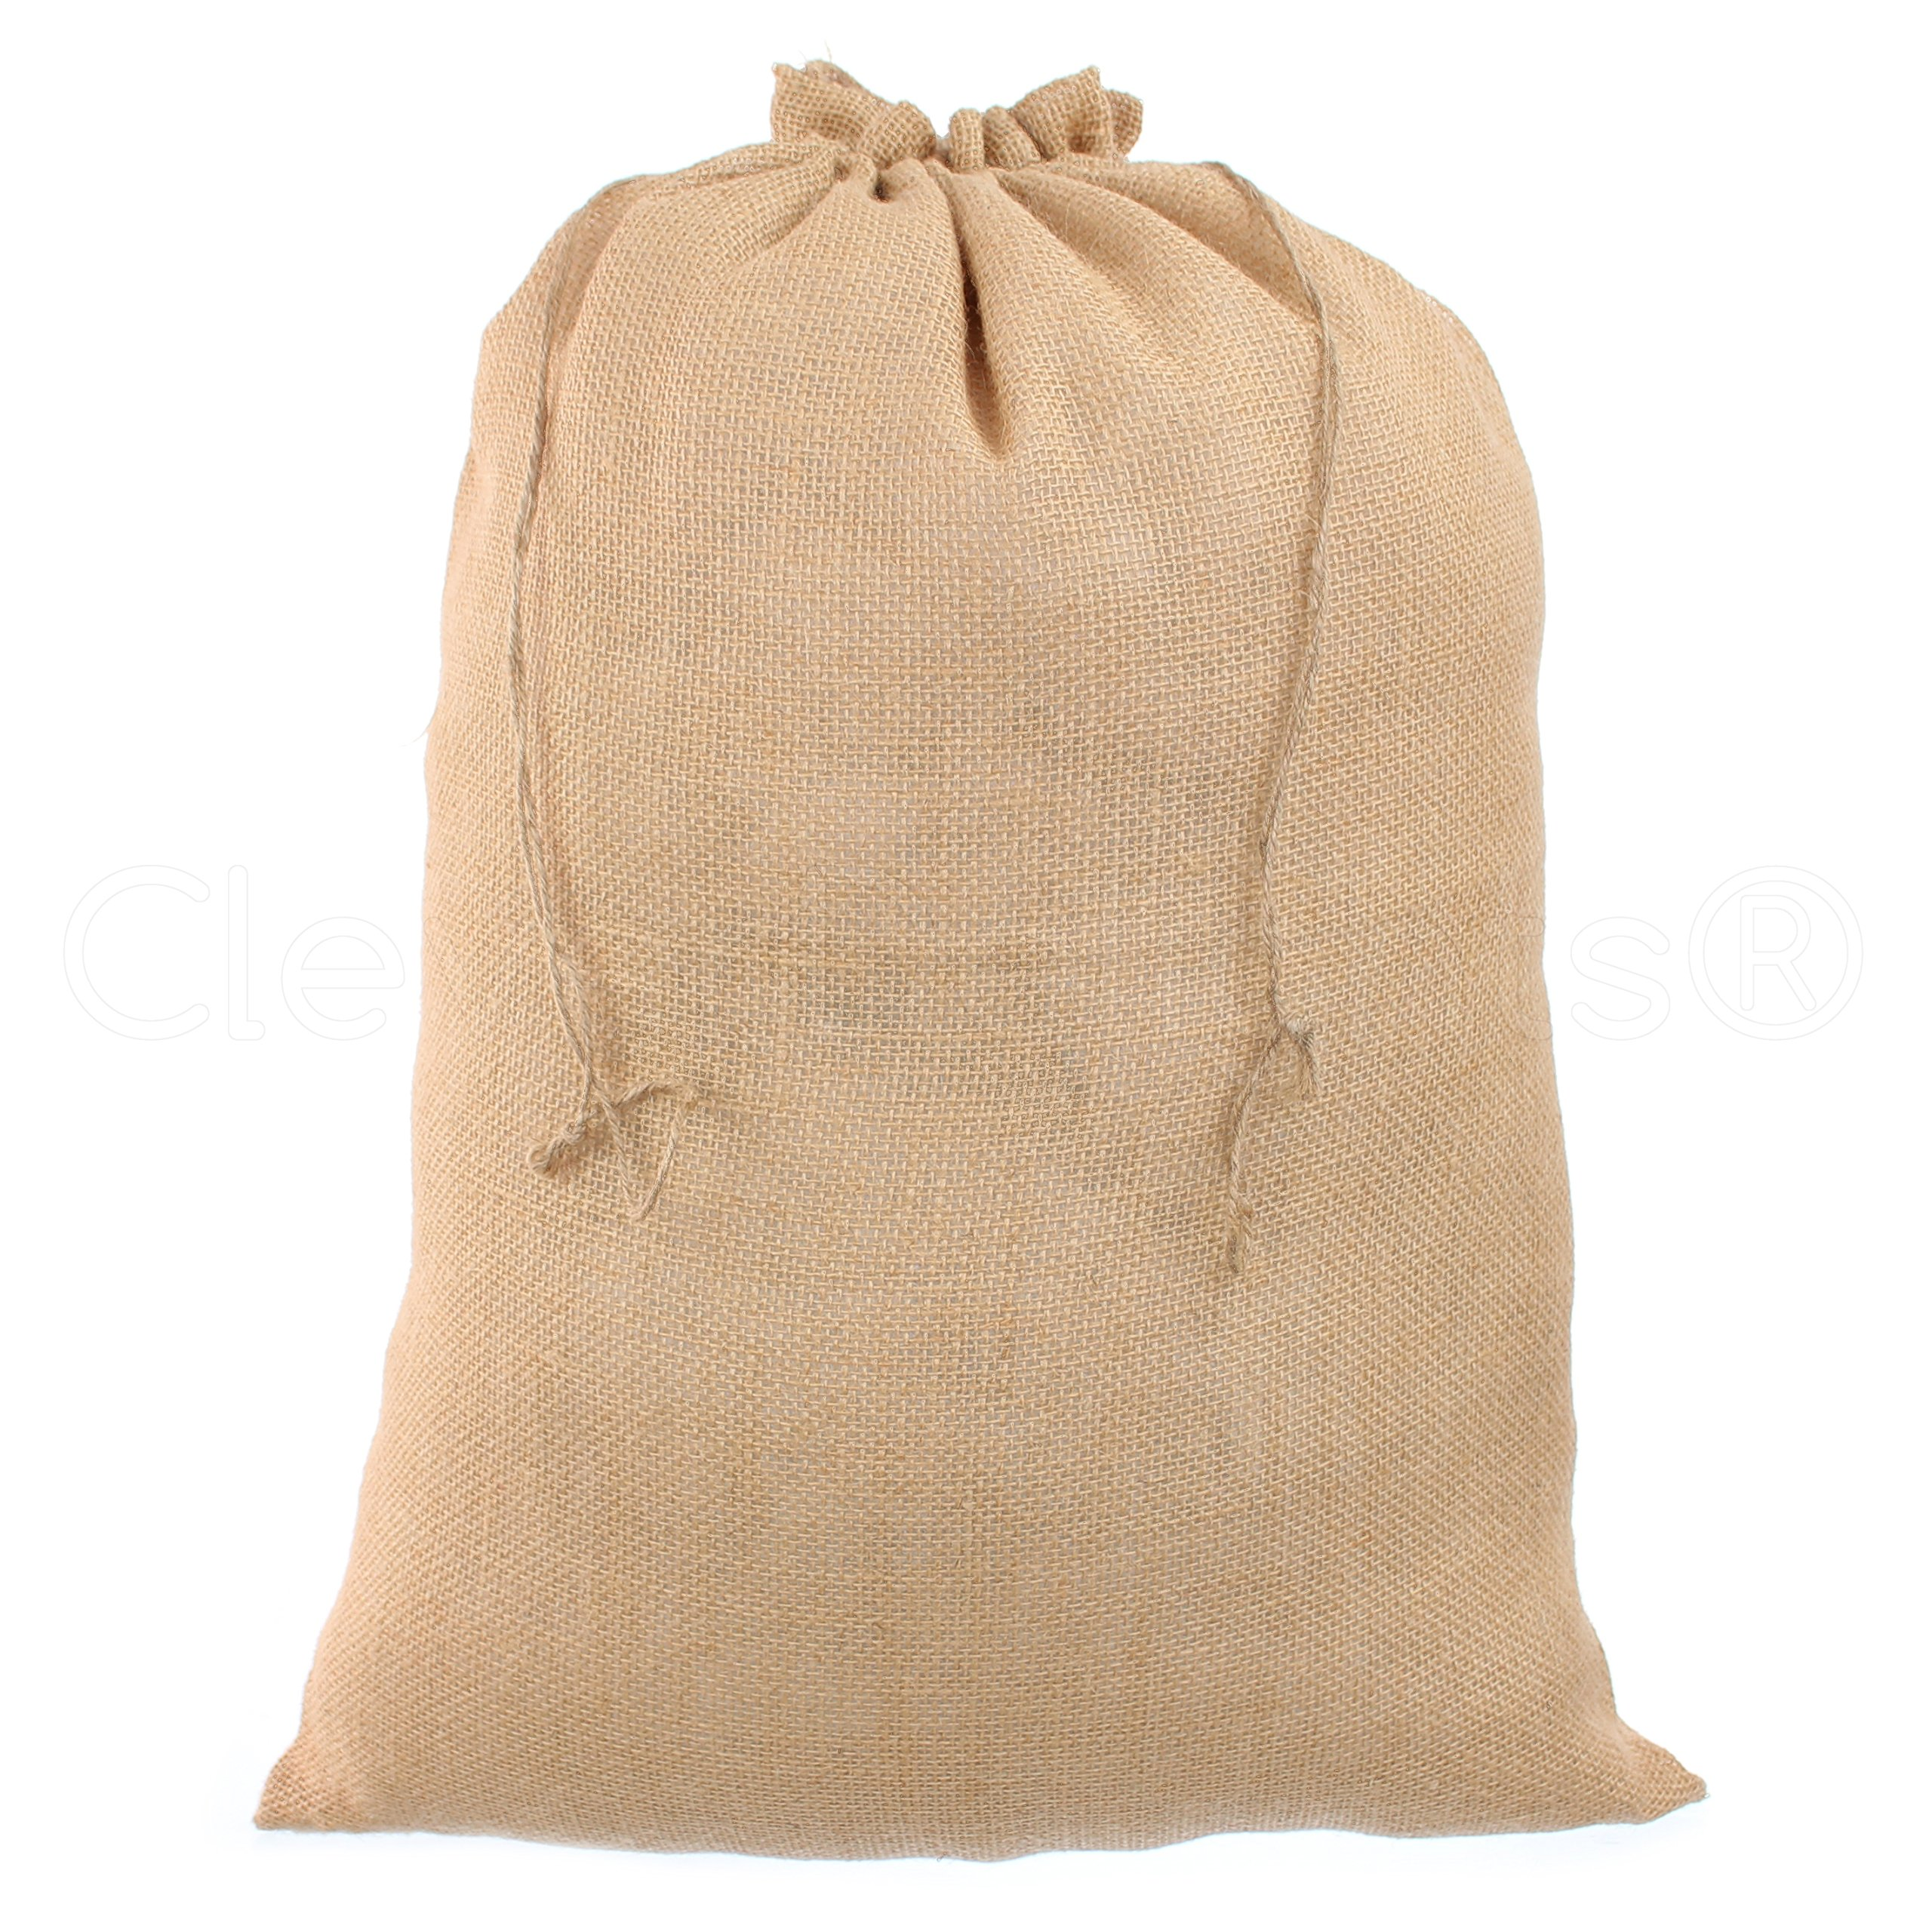 CleverDelights 18 X 24 Burlap Bags With Natural Jute Drawstring